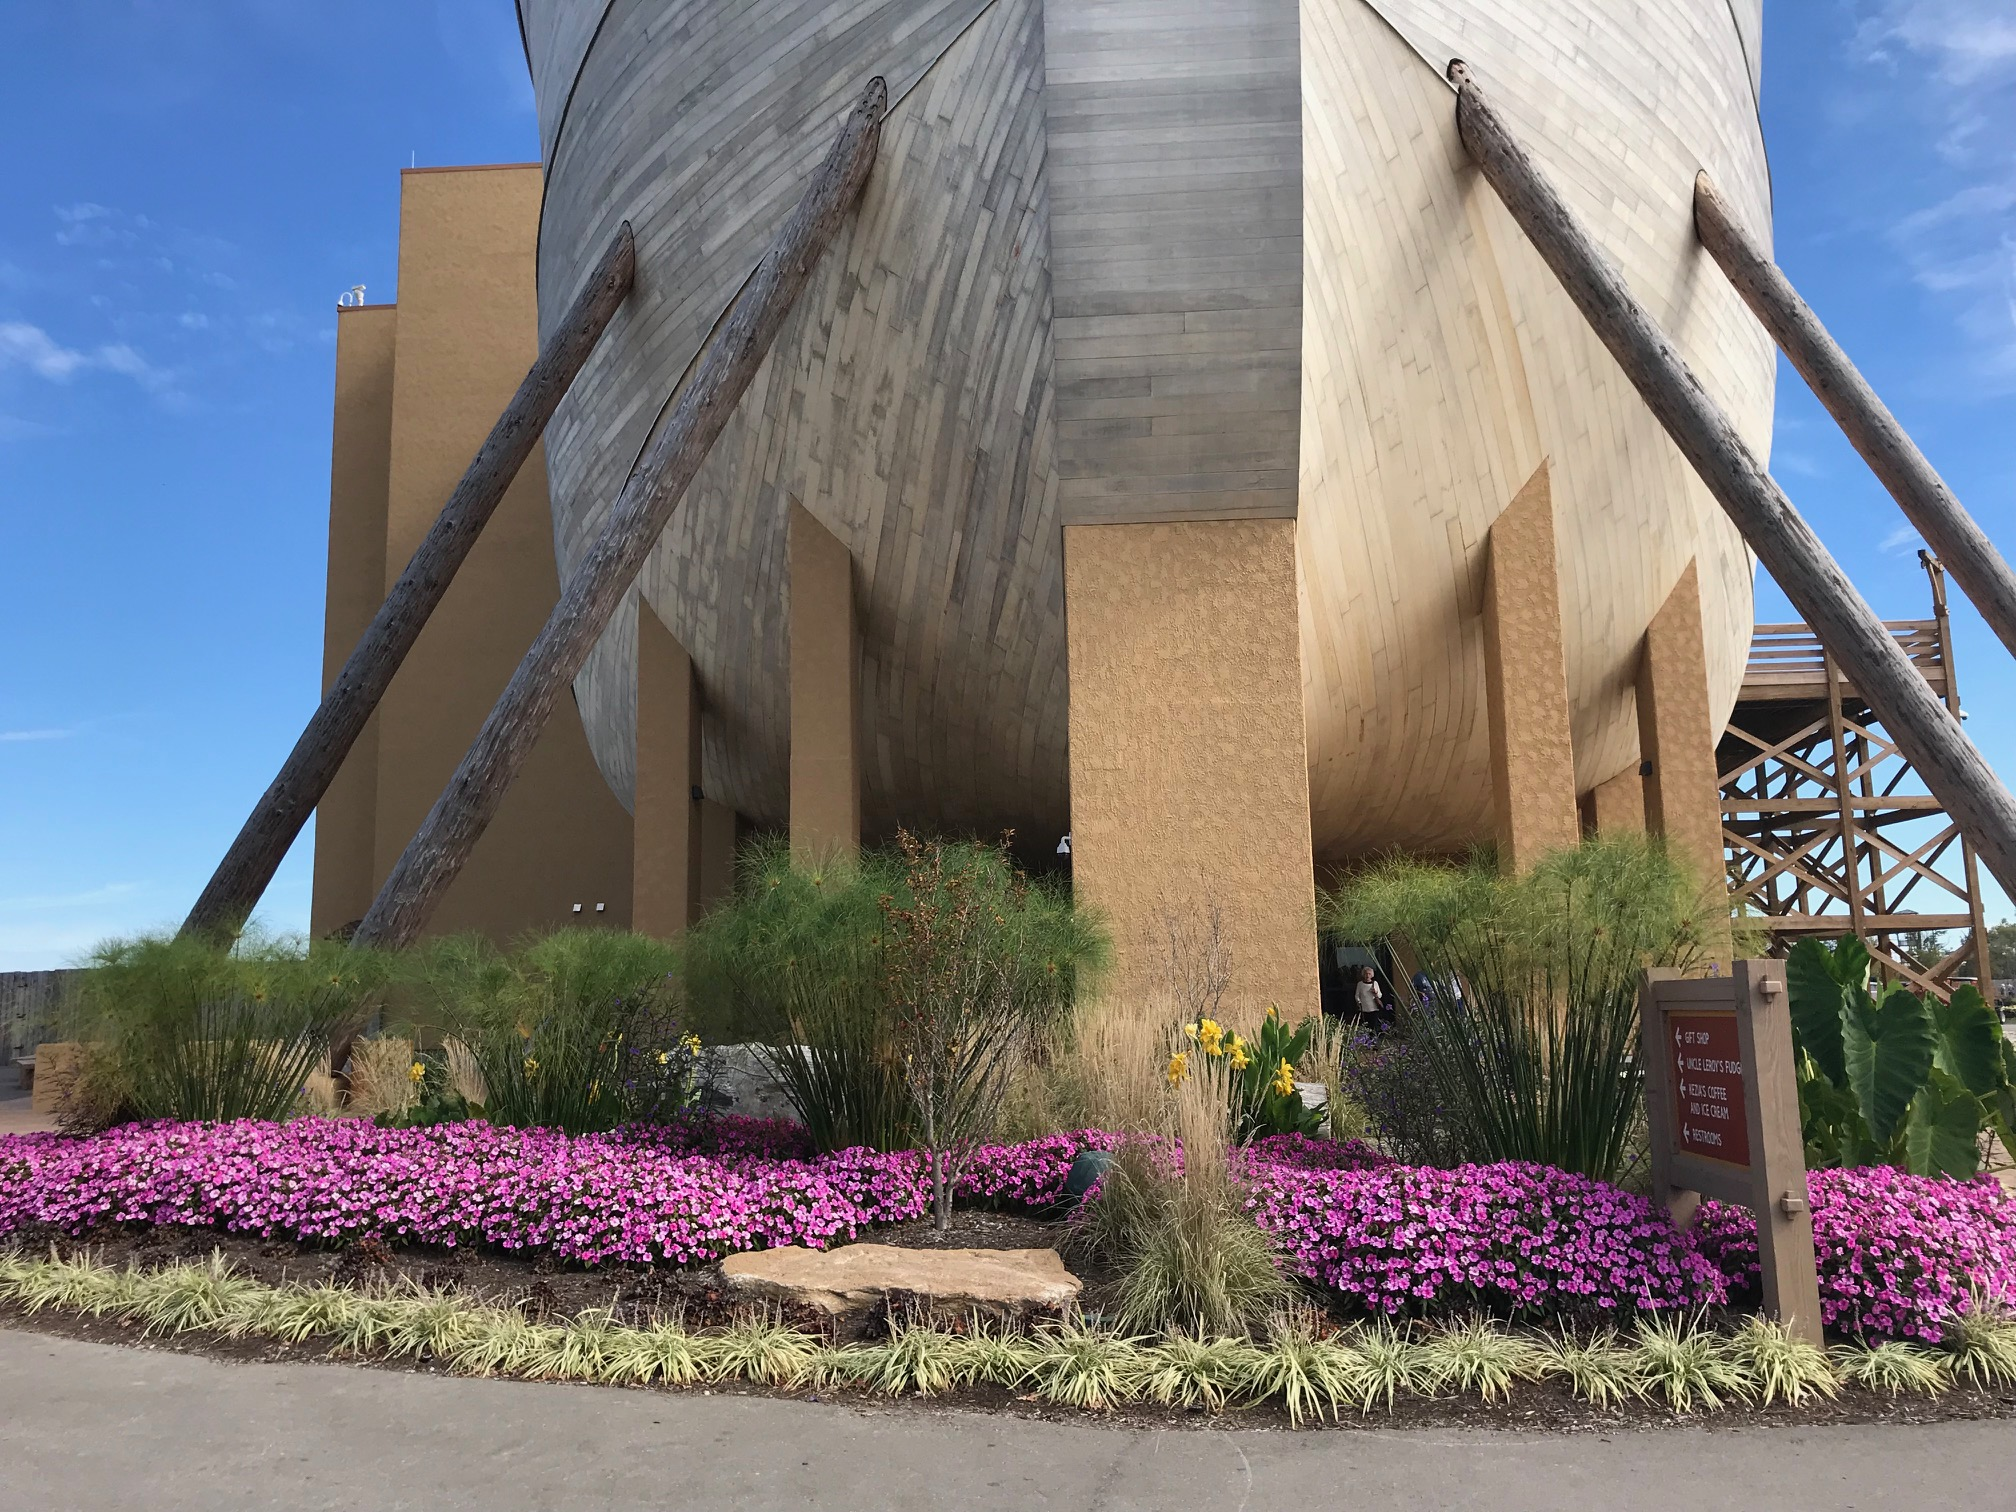 Ark Encounter Landscaping